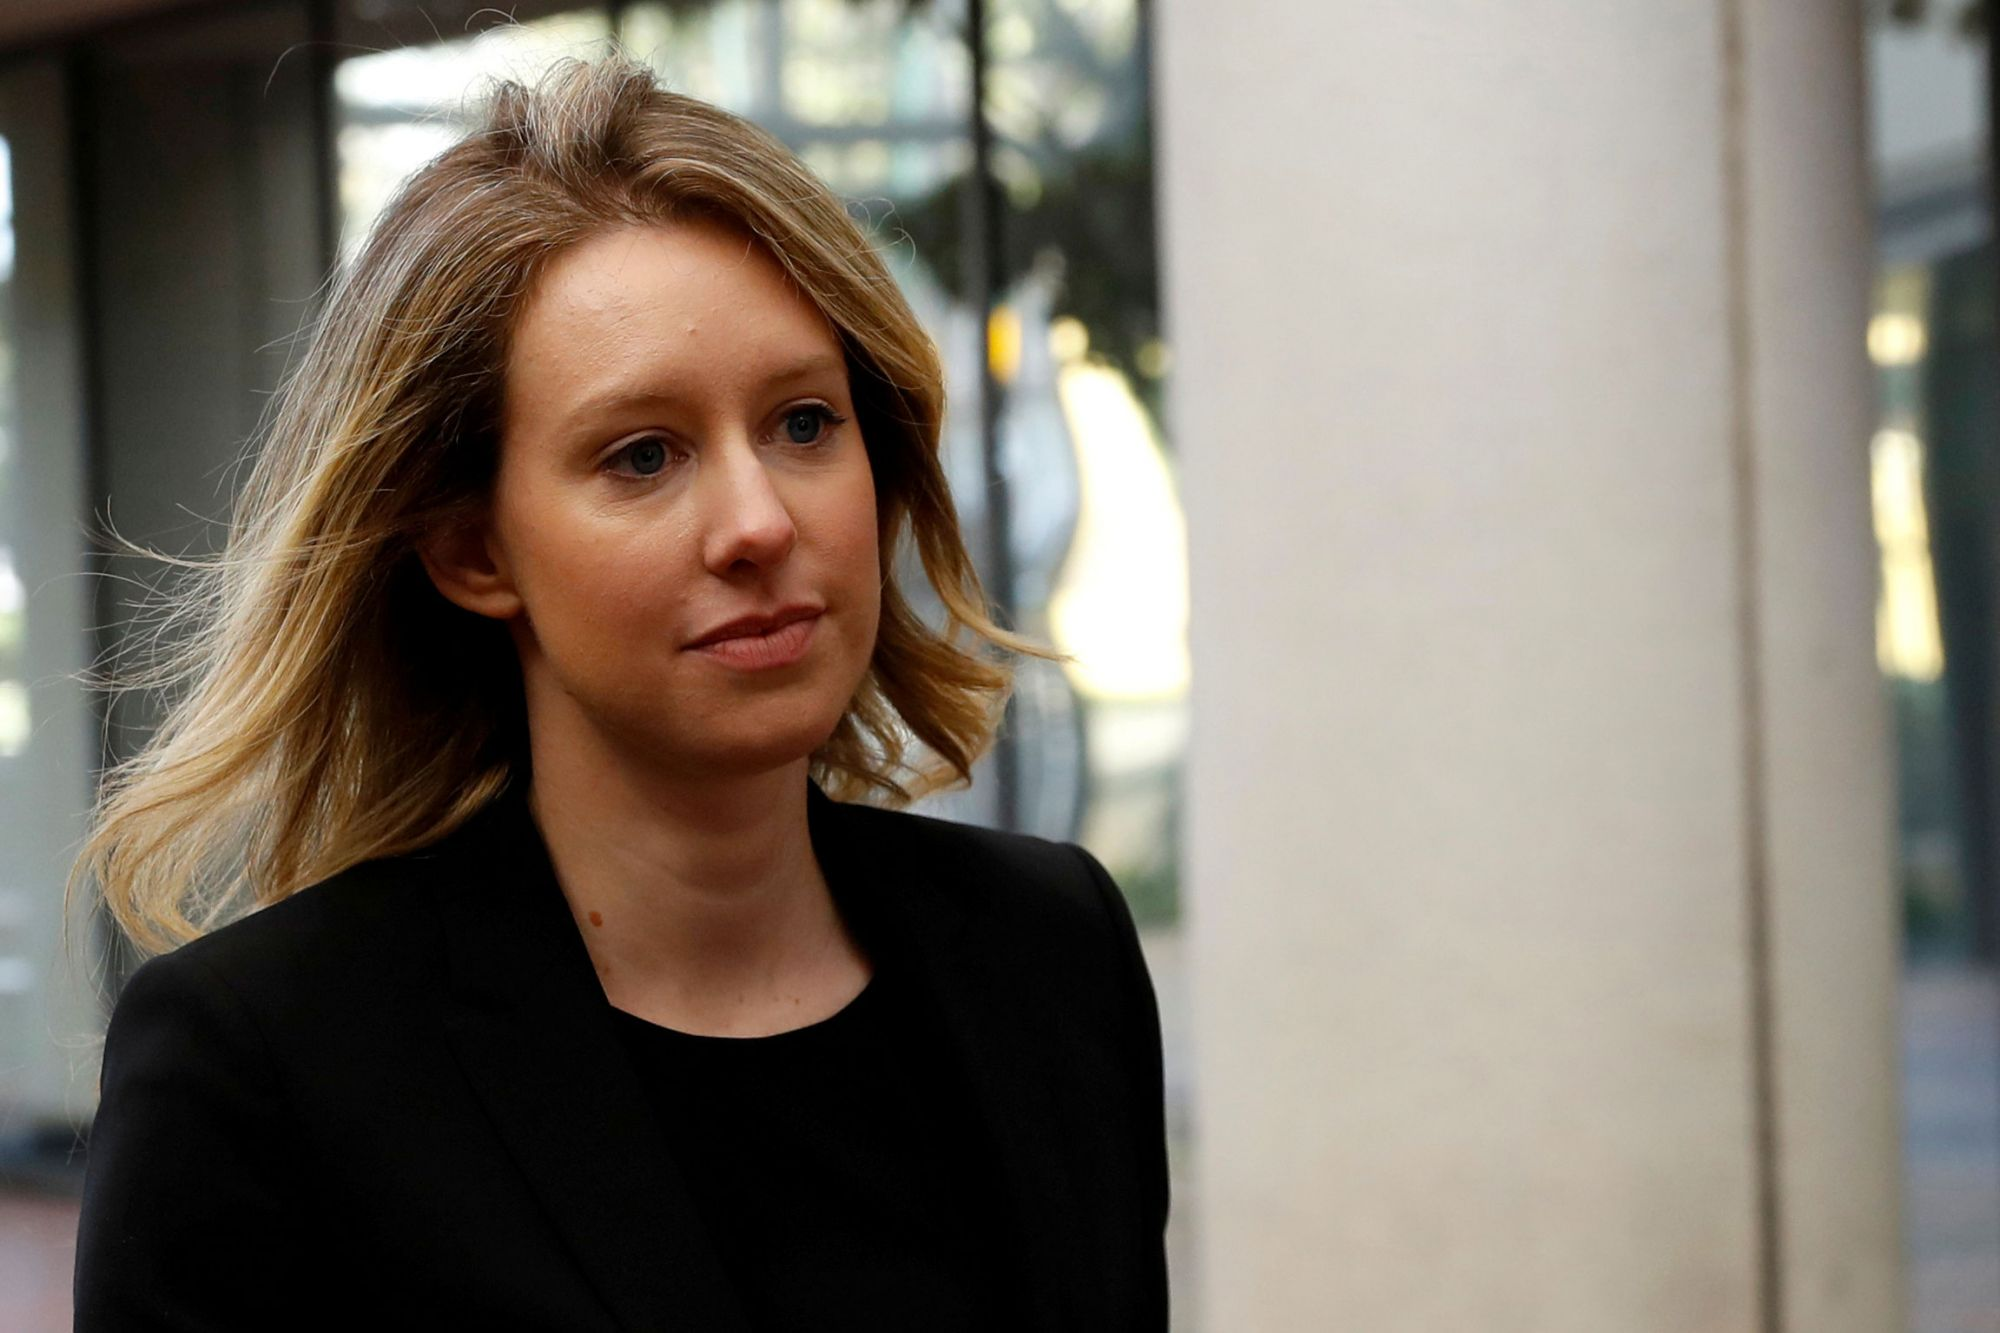 The Career Rise and Fall of Theranos Founder Elizabeth Holmes